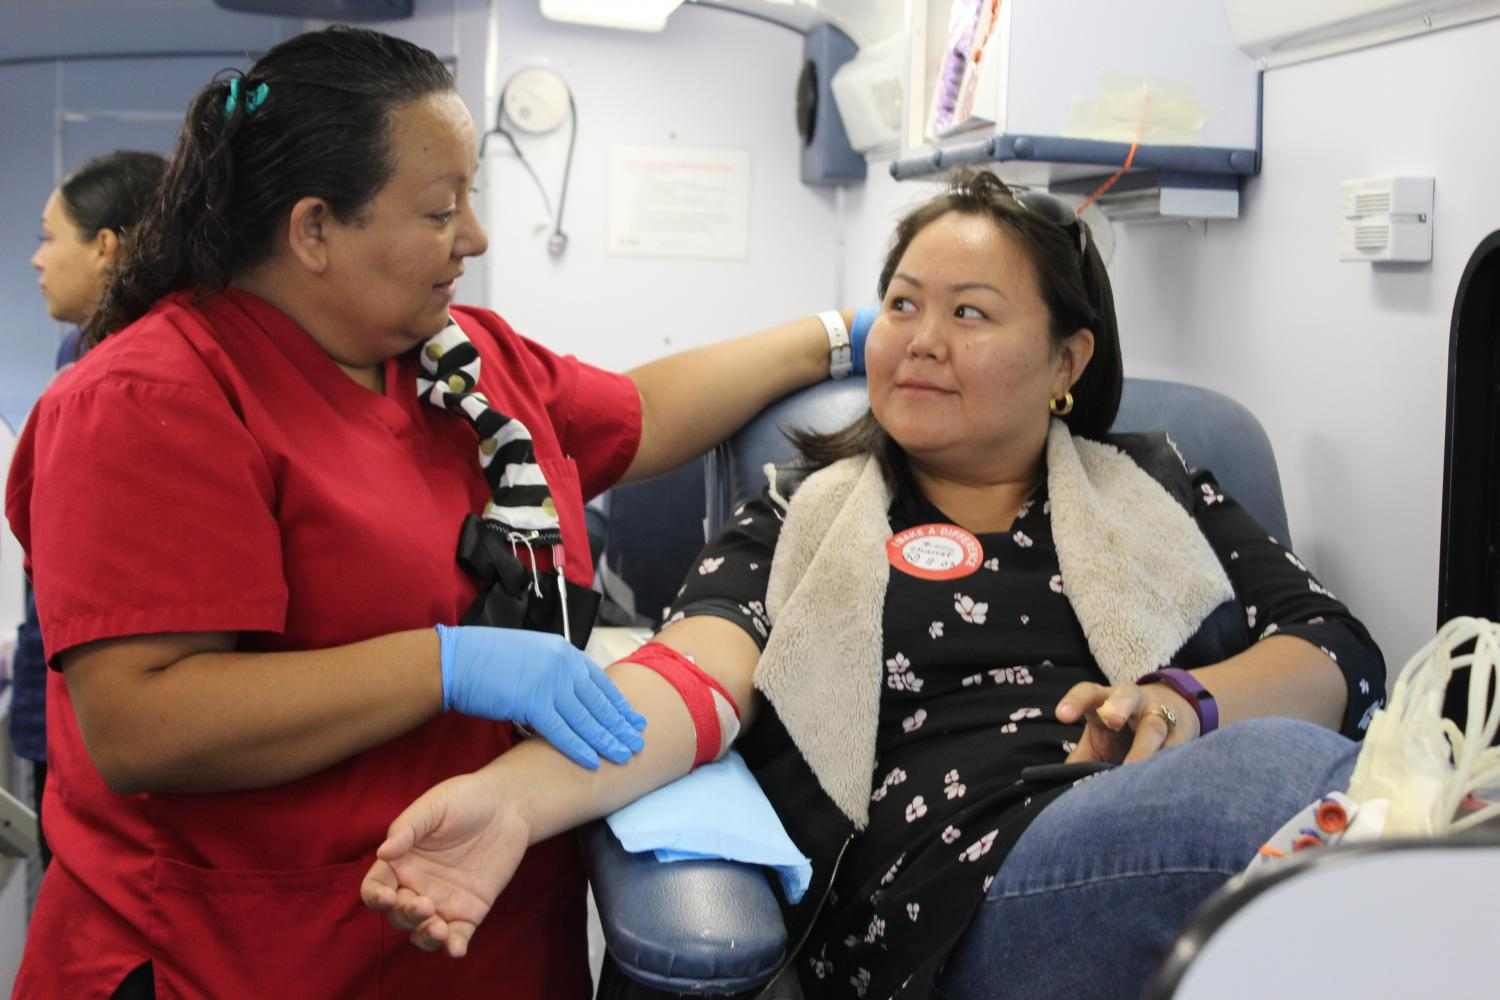 Supervisor/ Charge nurse Veronica Sereno with patient Zhanat Alipova. After each donor gave blood, the student received free complimentary snacks to insure that the donors do not become lightheaded from the donation. Photo credit: Scarled Murillo